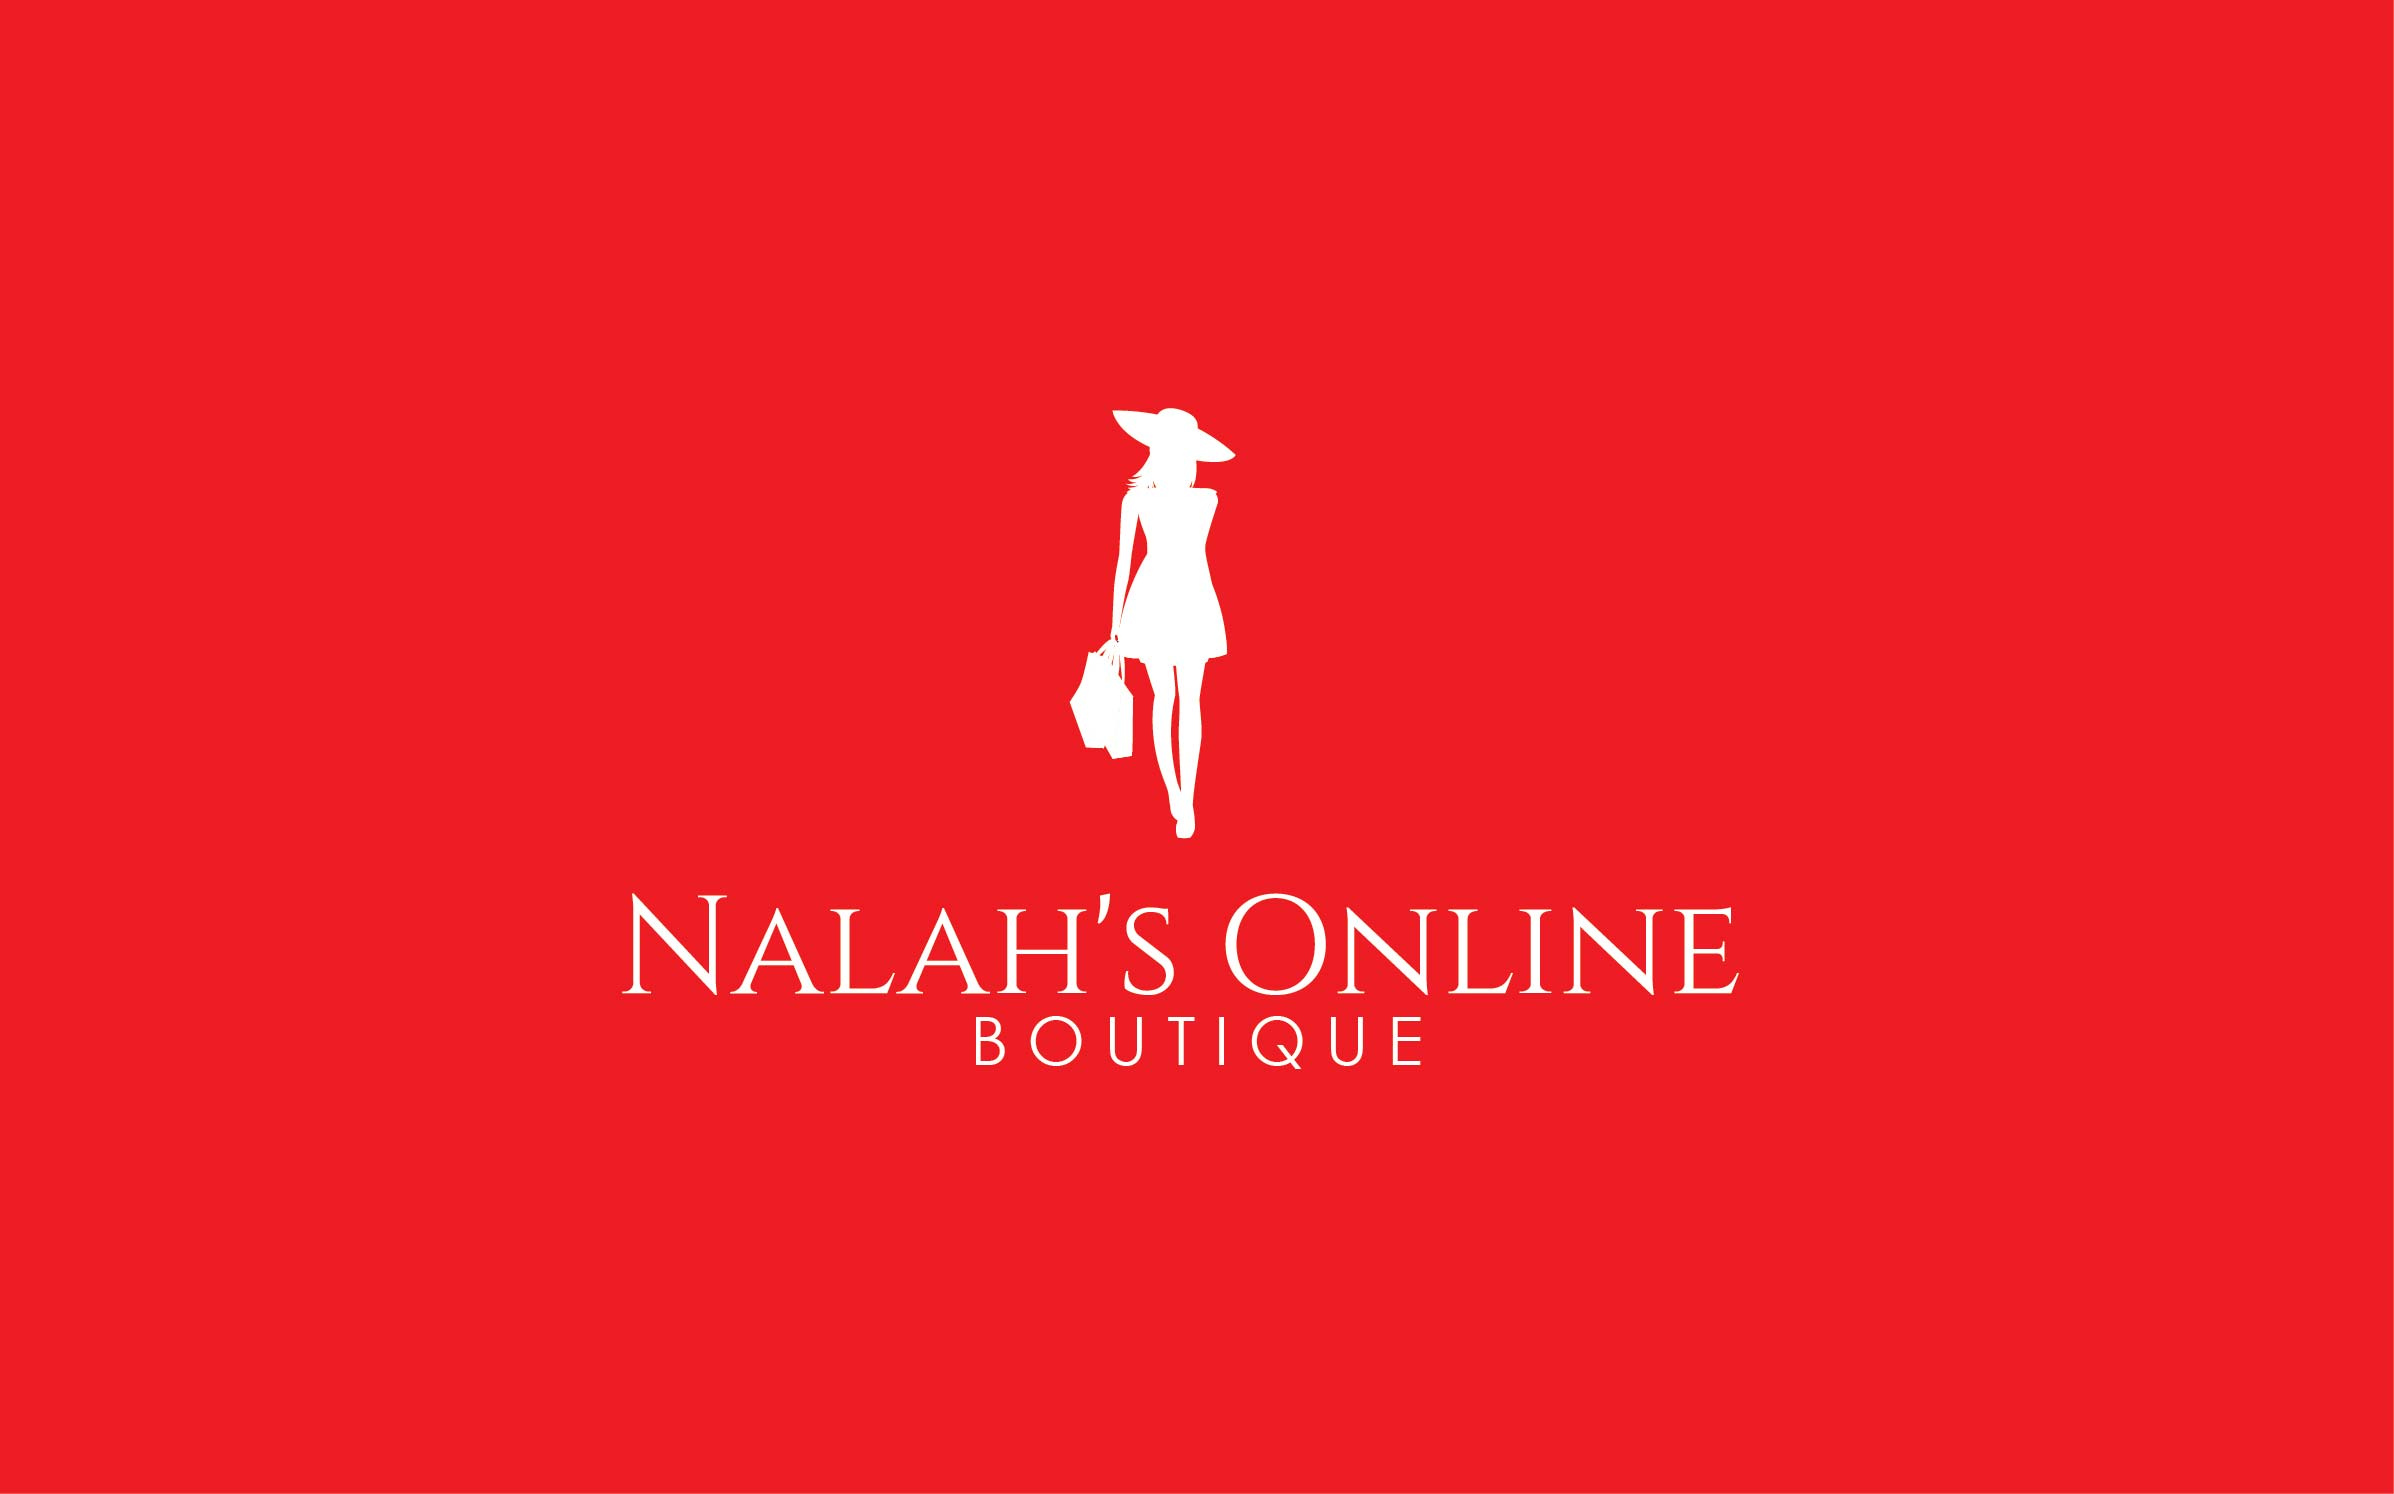 Jourjious Design - Nalah's logo.